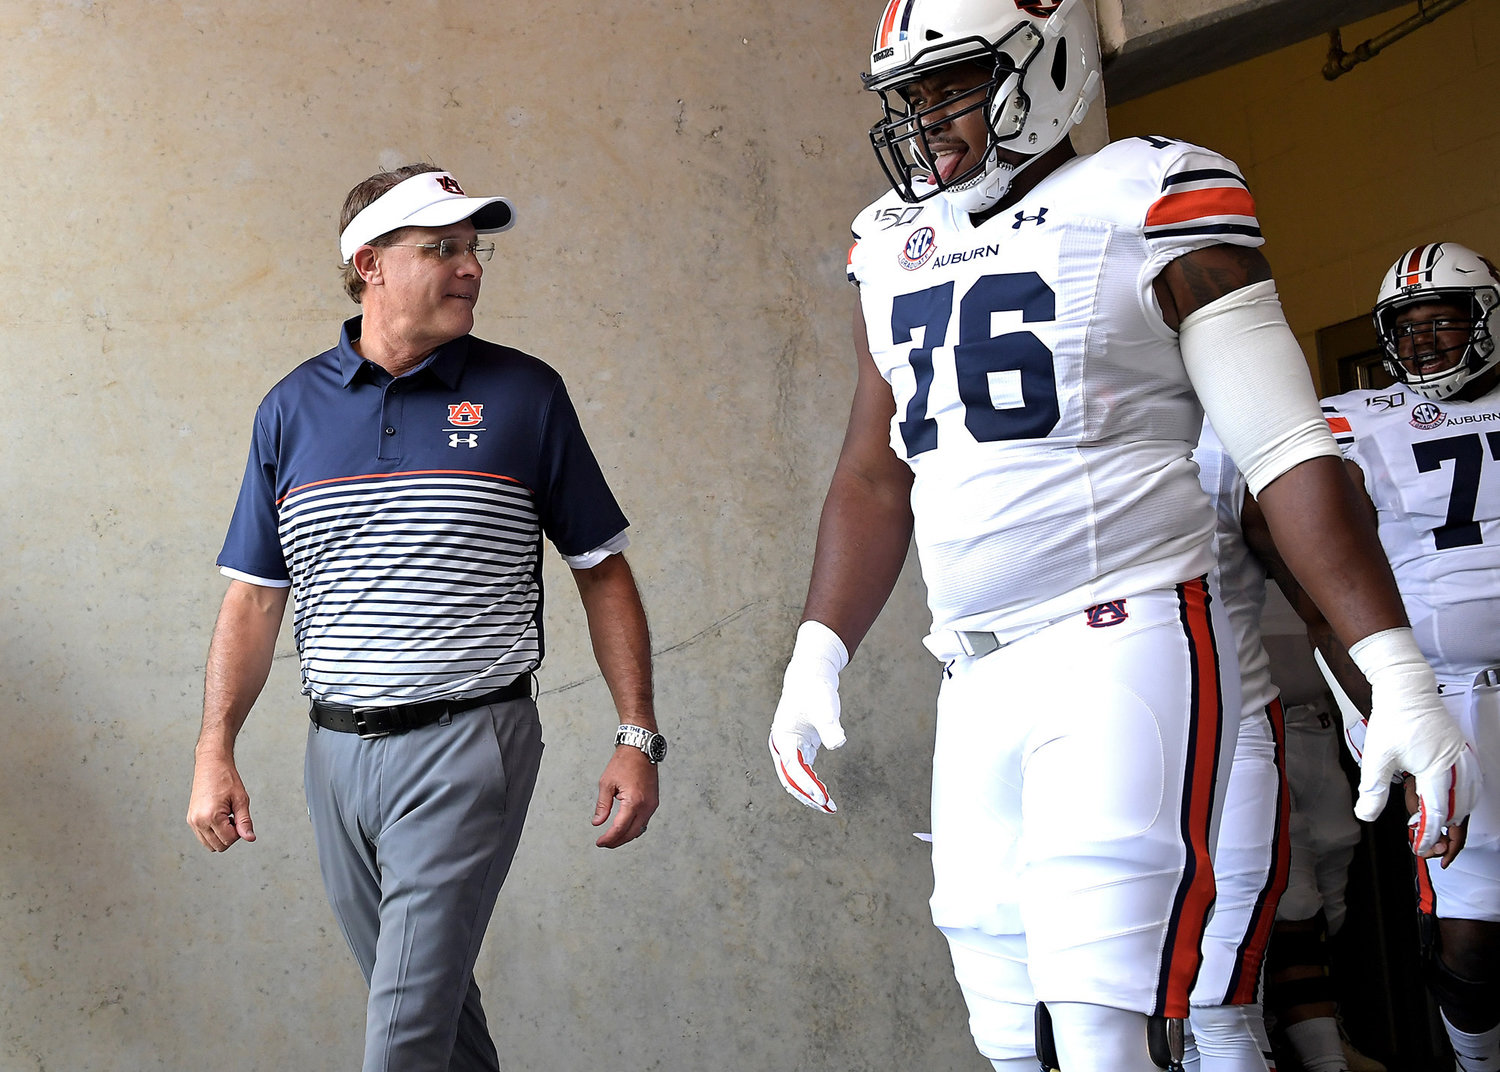 Auburn Tigers head coach Gus Malzahn leaves the locker room next to Auburn Tigers offensive lineman Prince Tega Wanogho (76) prior to the start of an NCAA football game between the Texas A&M Aggies and the Tigers Saturday, Sept. 21, 2019, at Kyle Field in College Station Texas. Auburn wins 28-20.